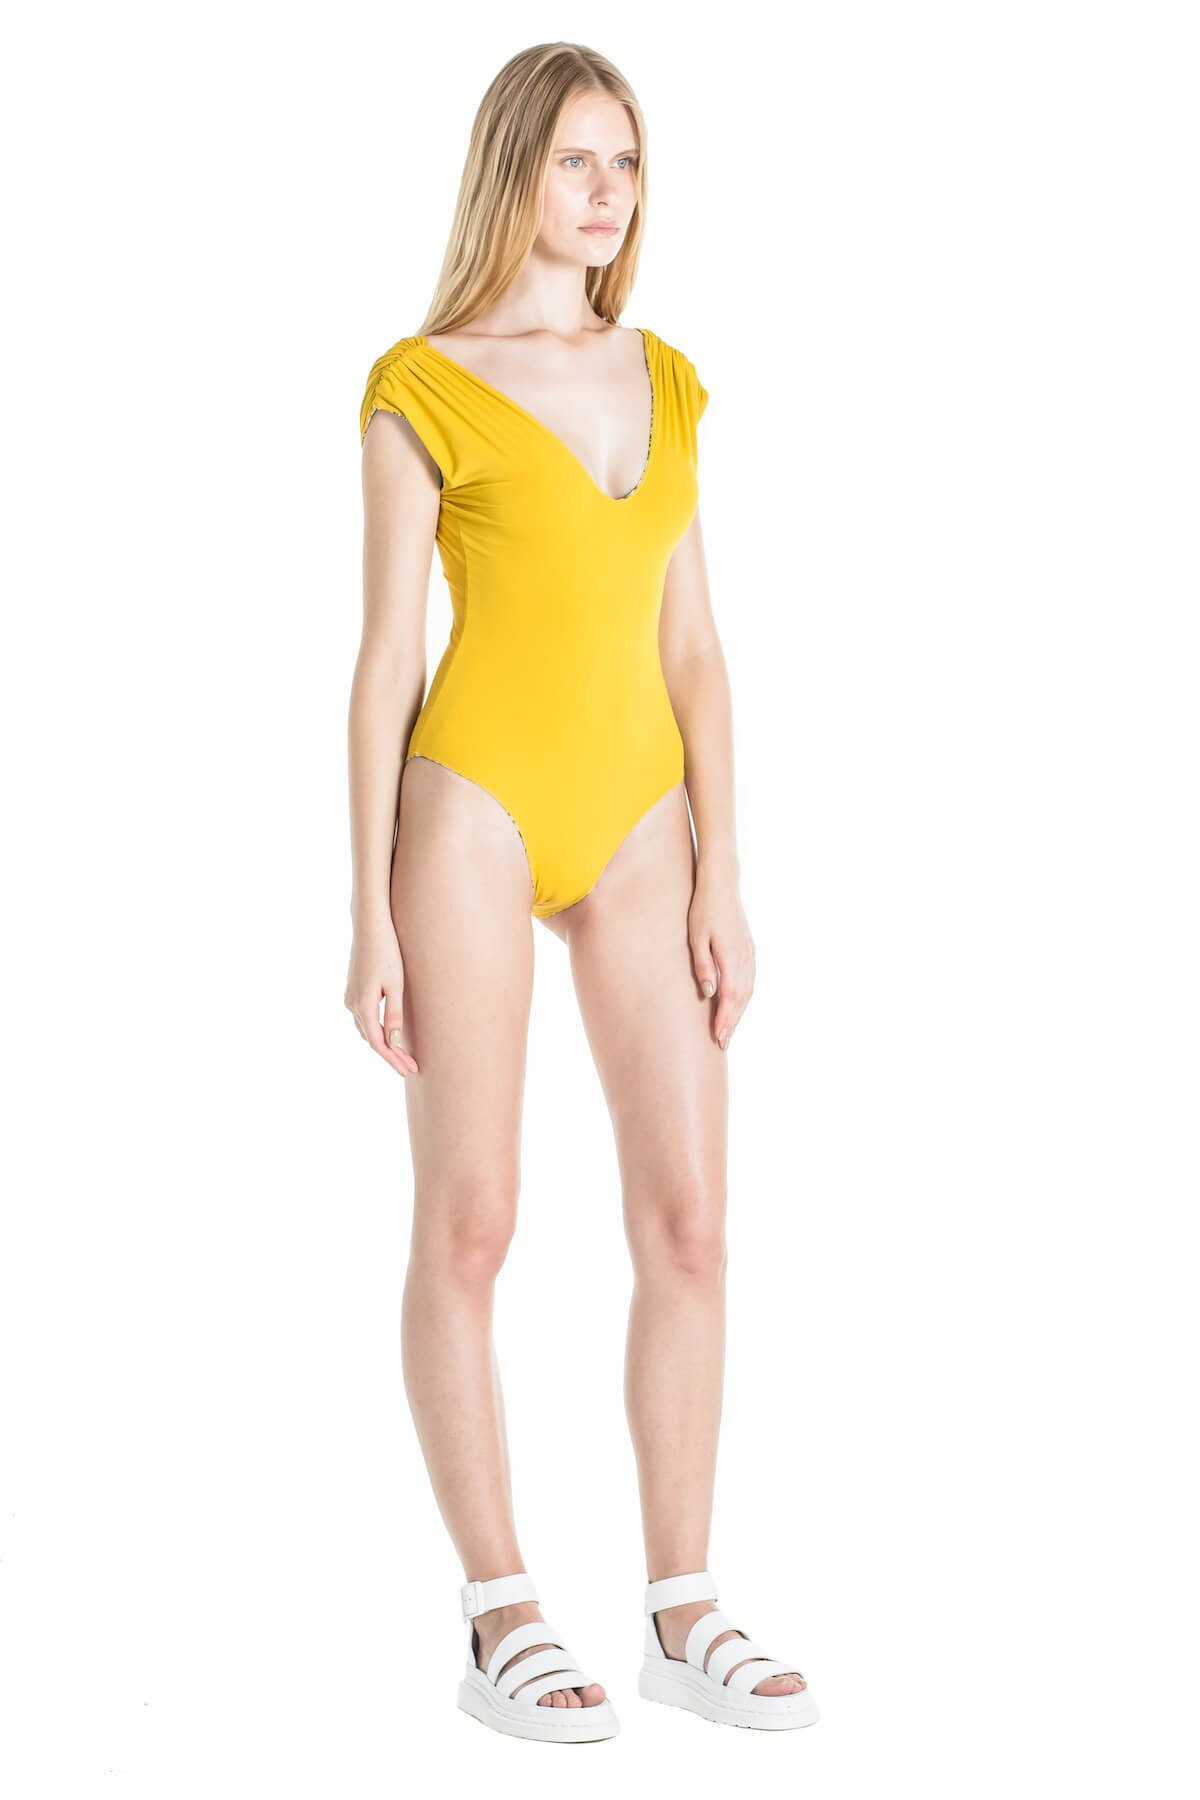 Side of Andrea one piece swimsuit in Mustard.